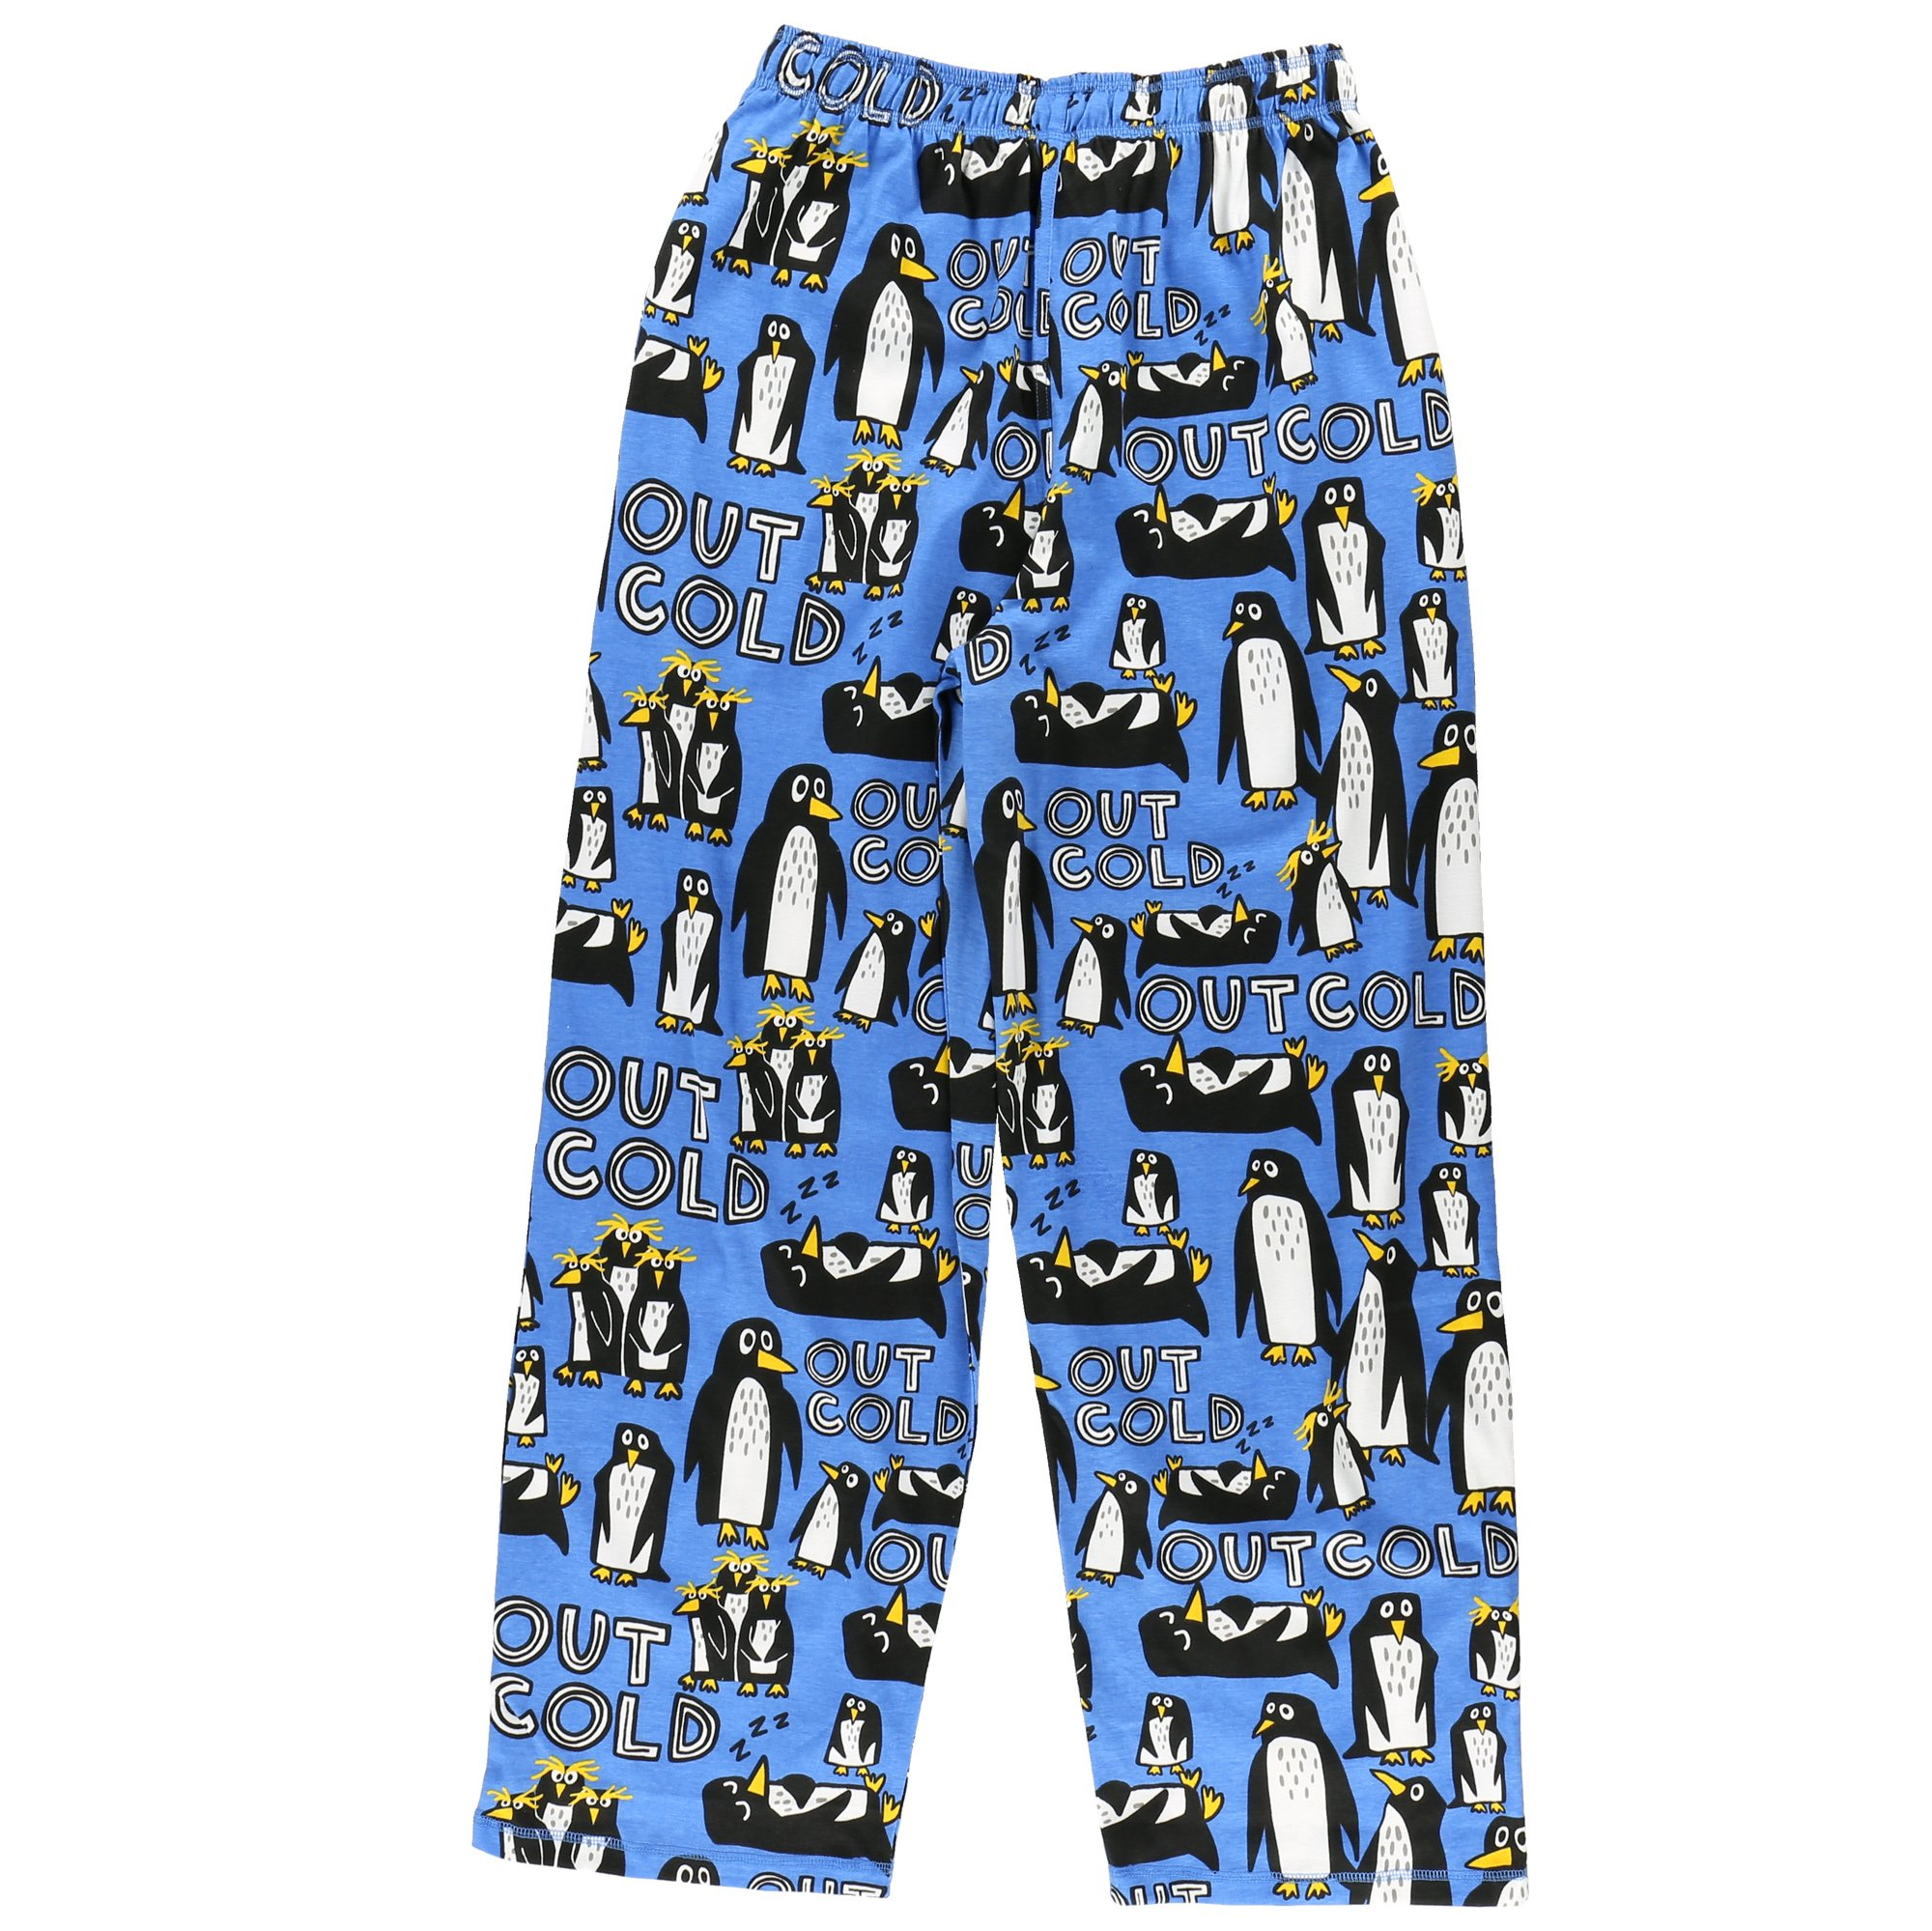 Out Cold Men's Pajama Pants Bottom by LazyOne | Pajama Bottom for Men (Large) by Lazy One (Image #2)